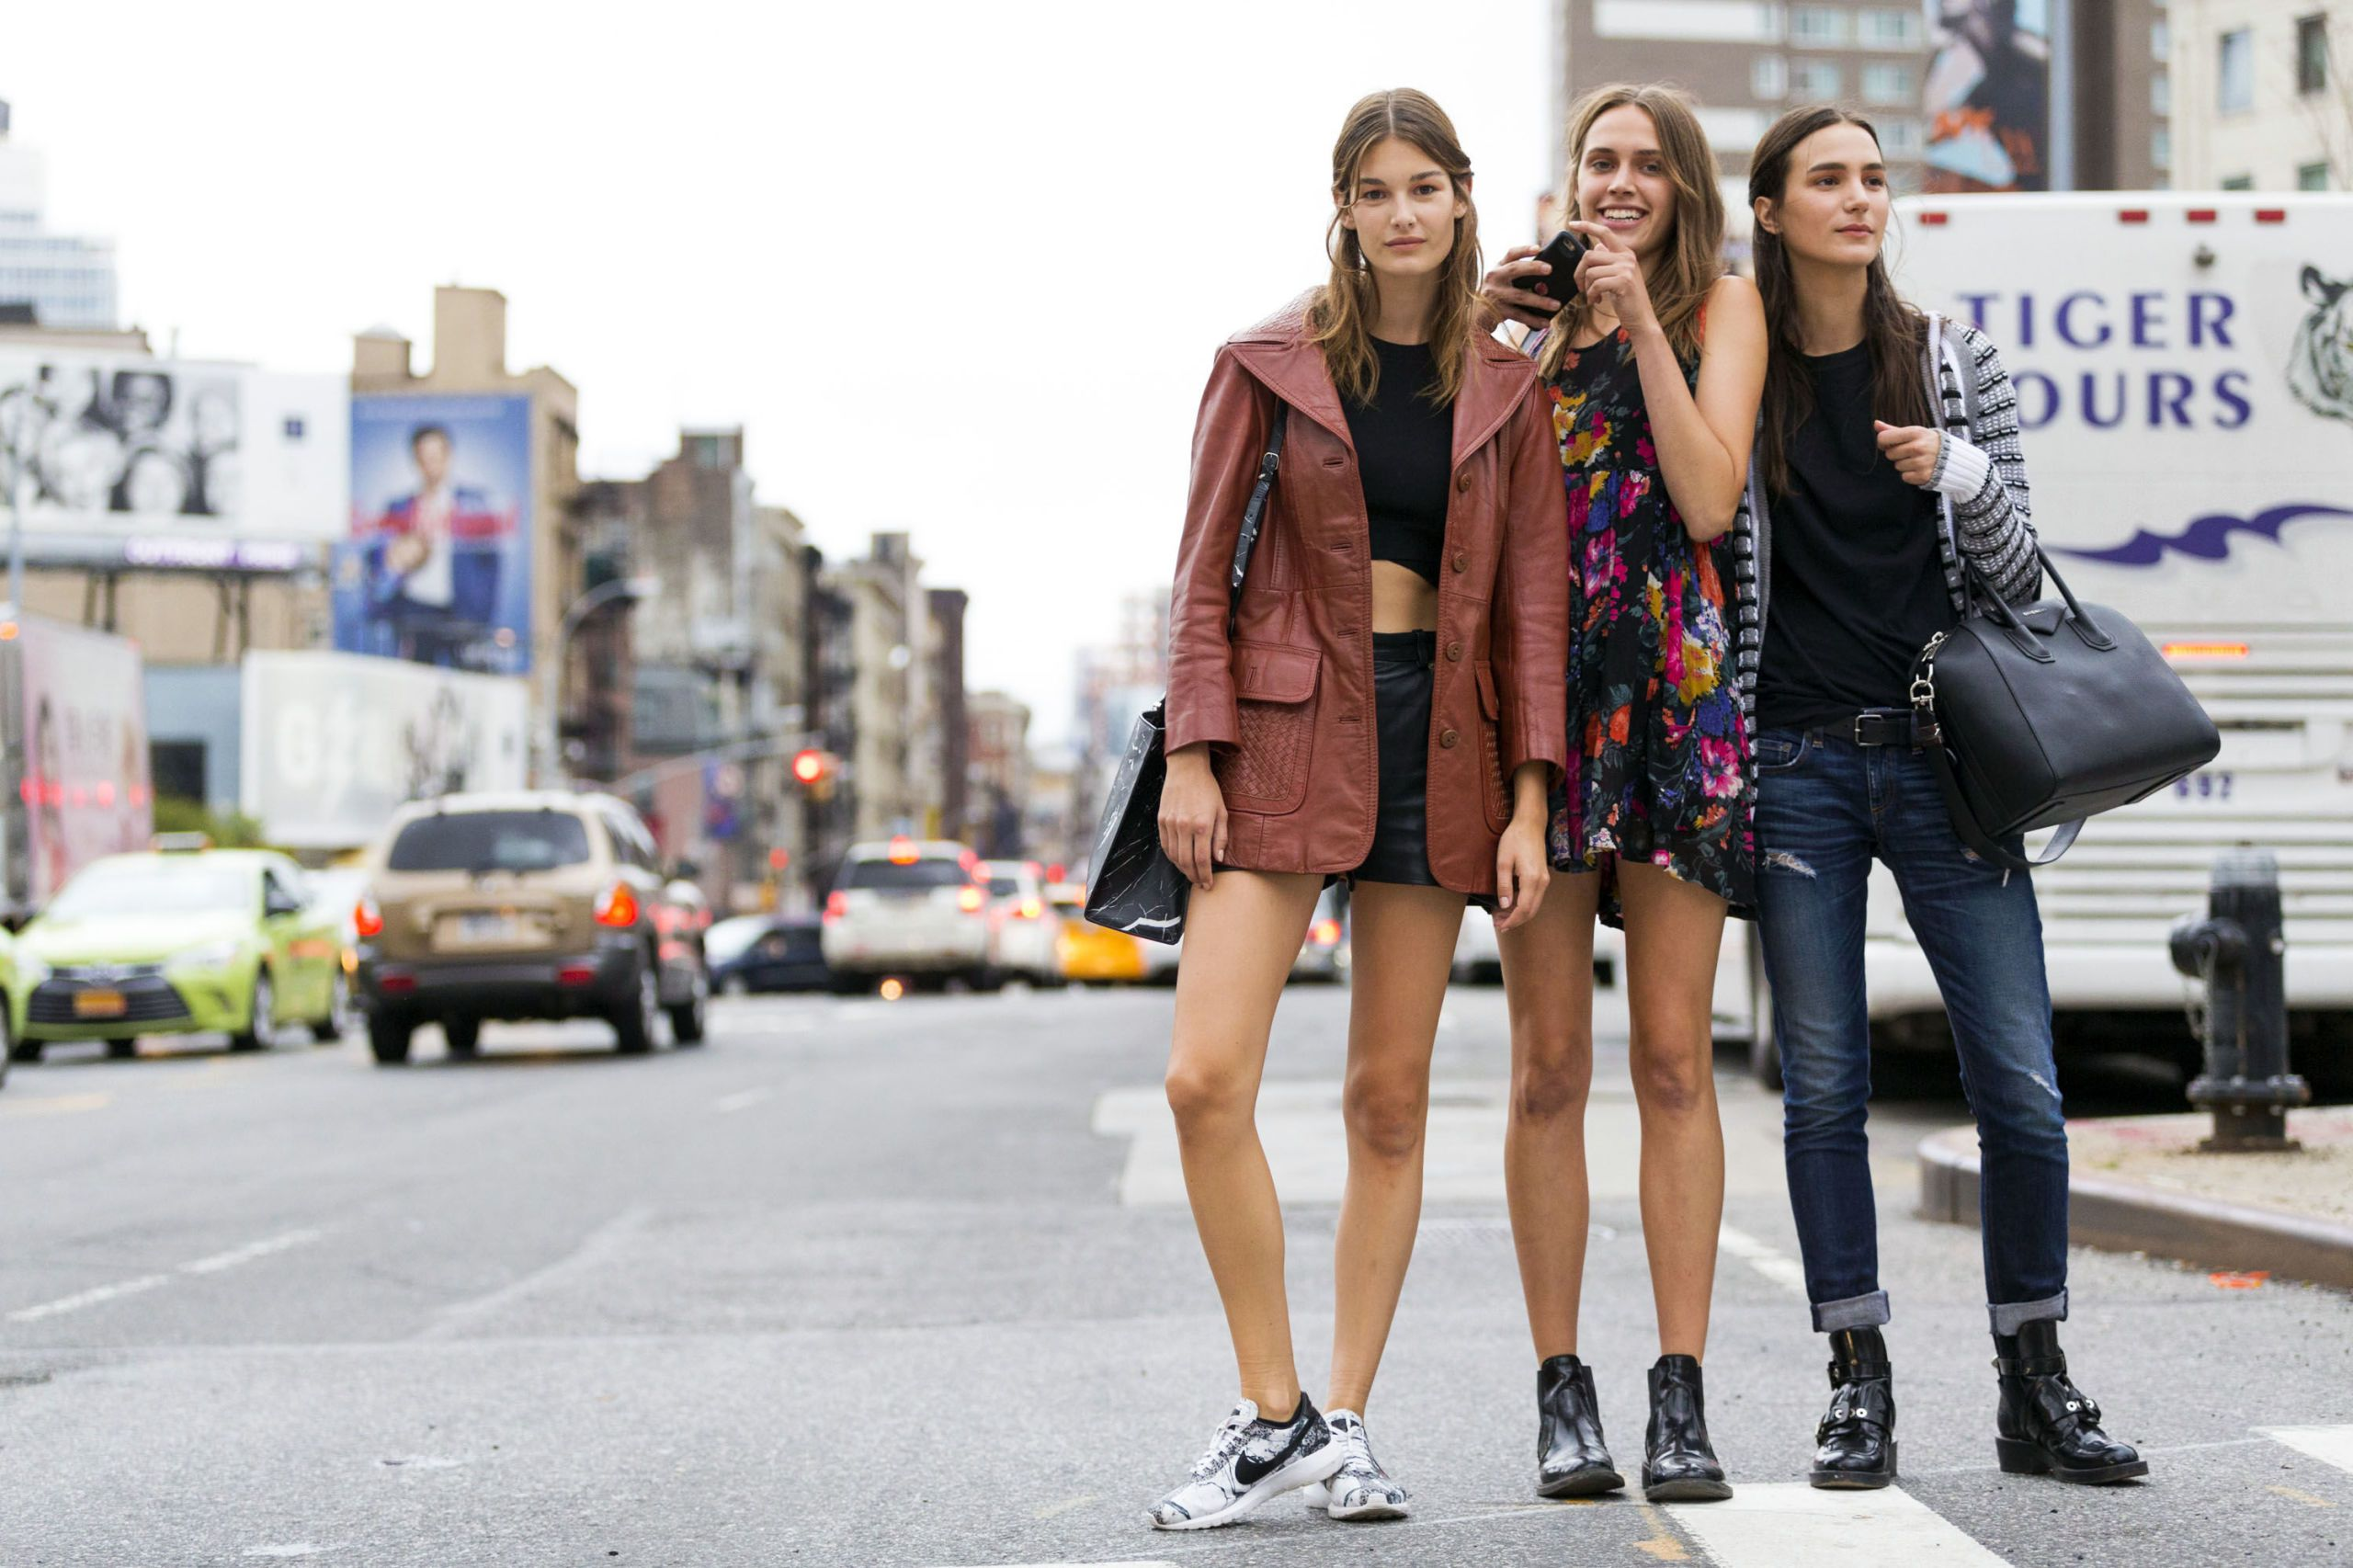 Why The Lack Of Body Diversity In Street Style Photography Is Offensive